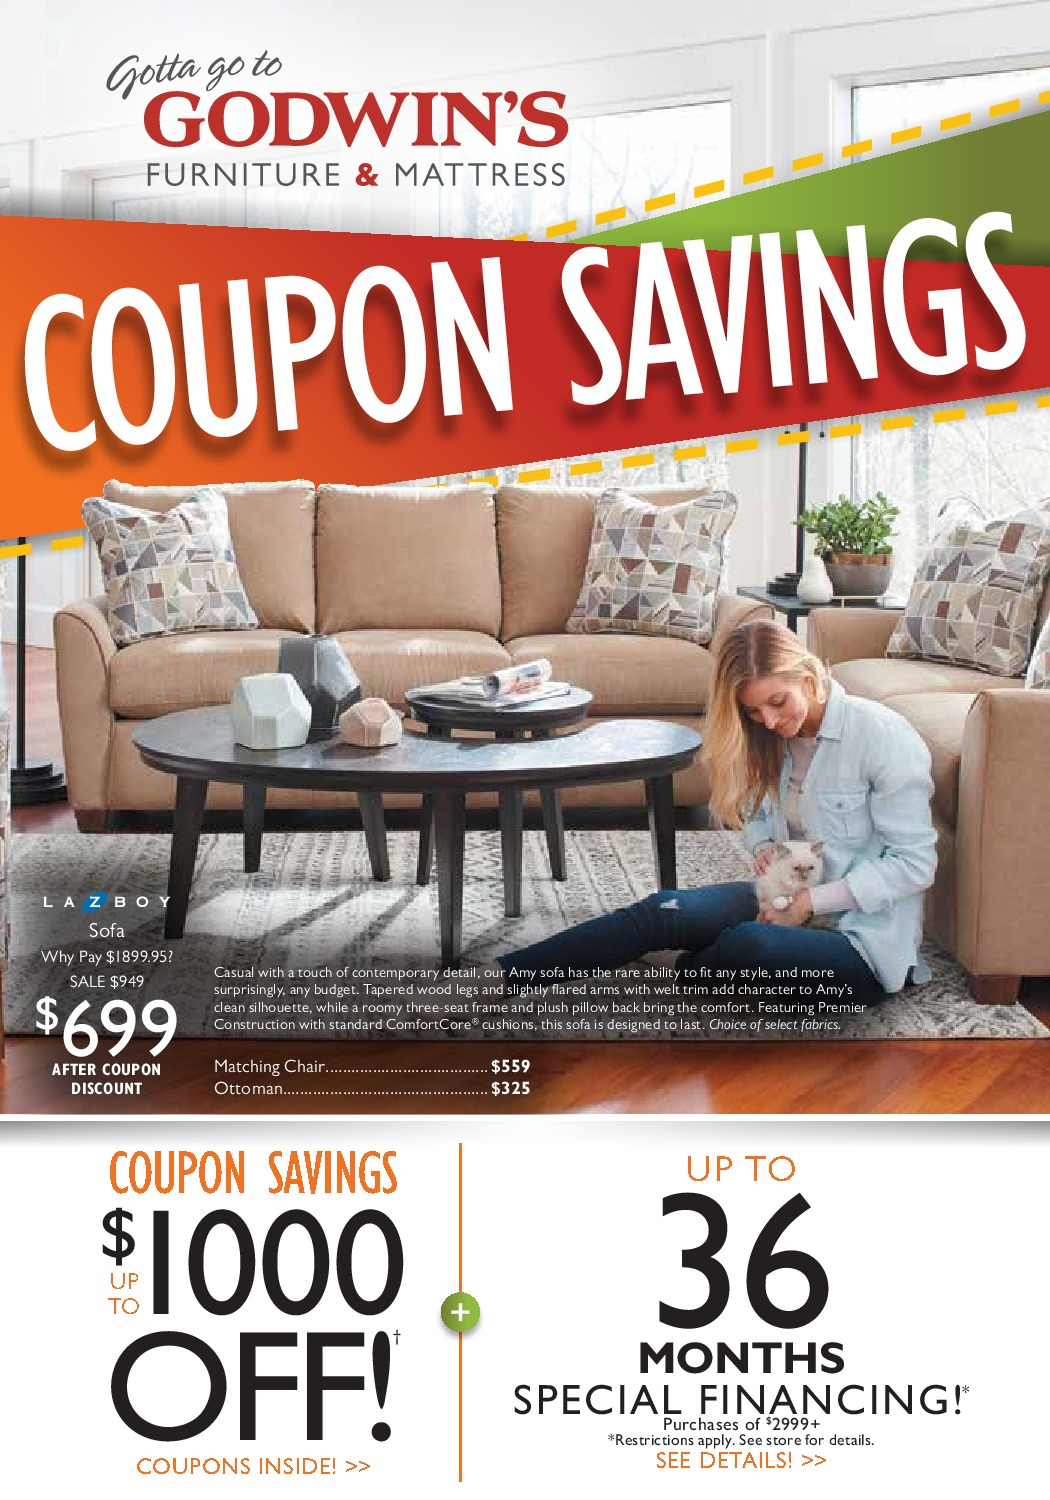 GOFU-9021-1991-CouponEvent-16pgCoupon-BOOK-WebSpec